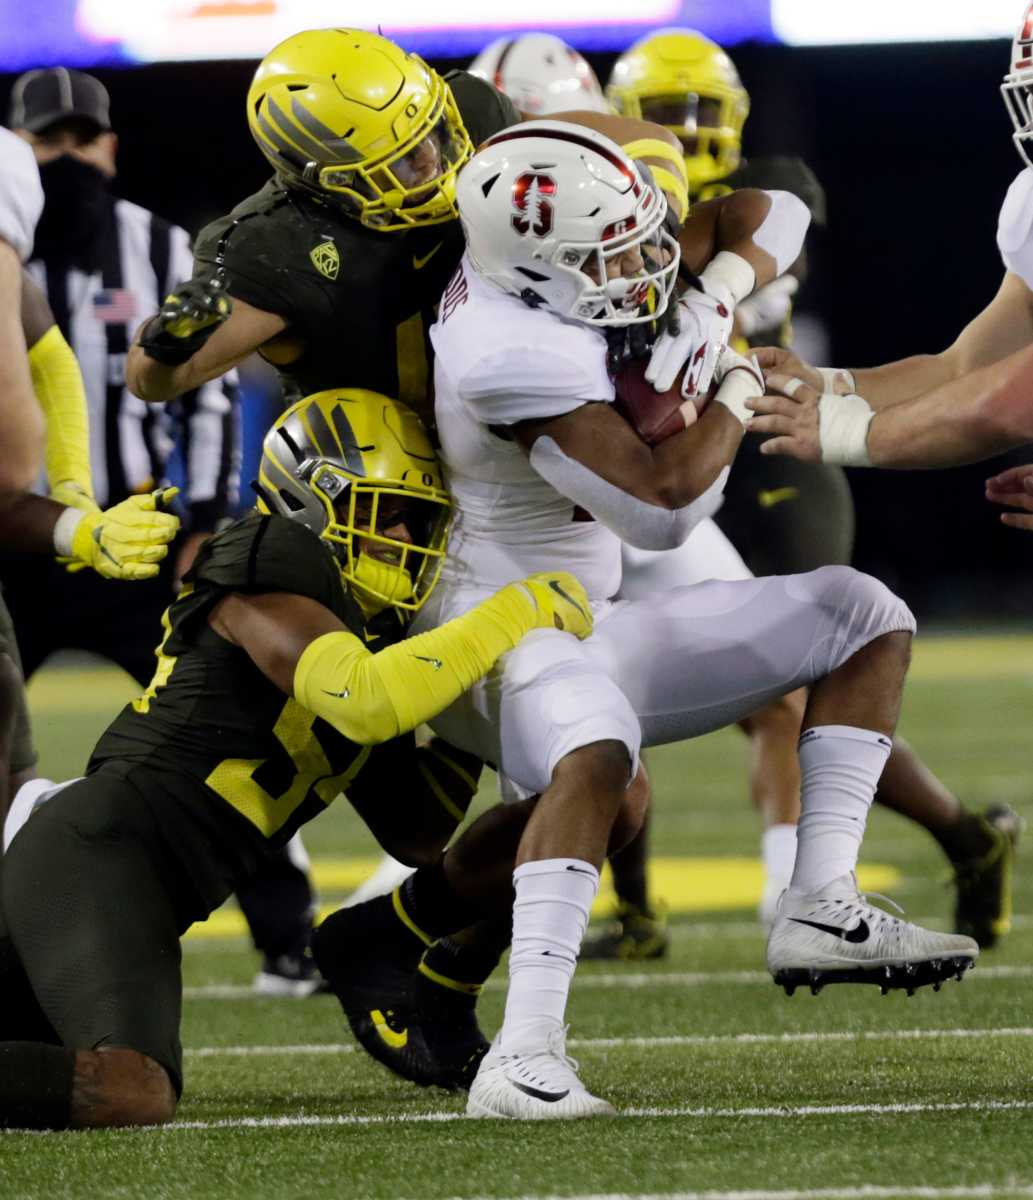 Dru Mathis (54) works with Isaac Slade-Matautia (41) to bring down Stanford running back Justus Woods.